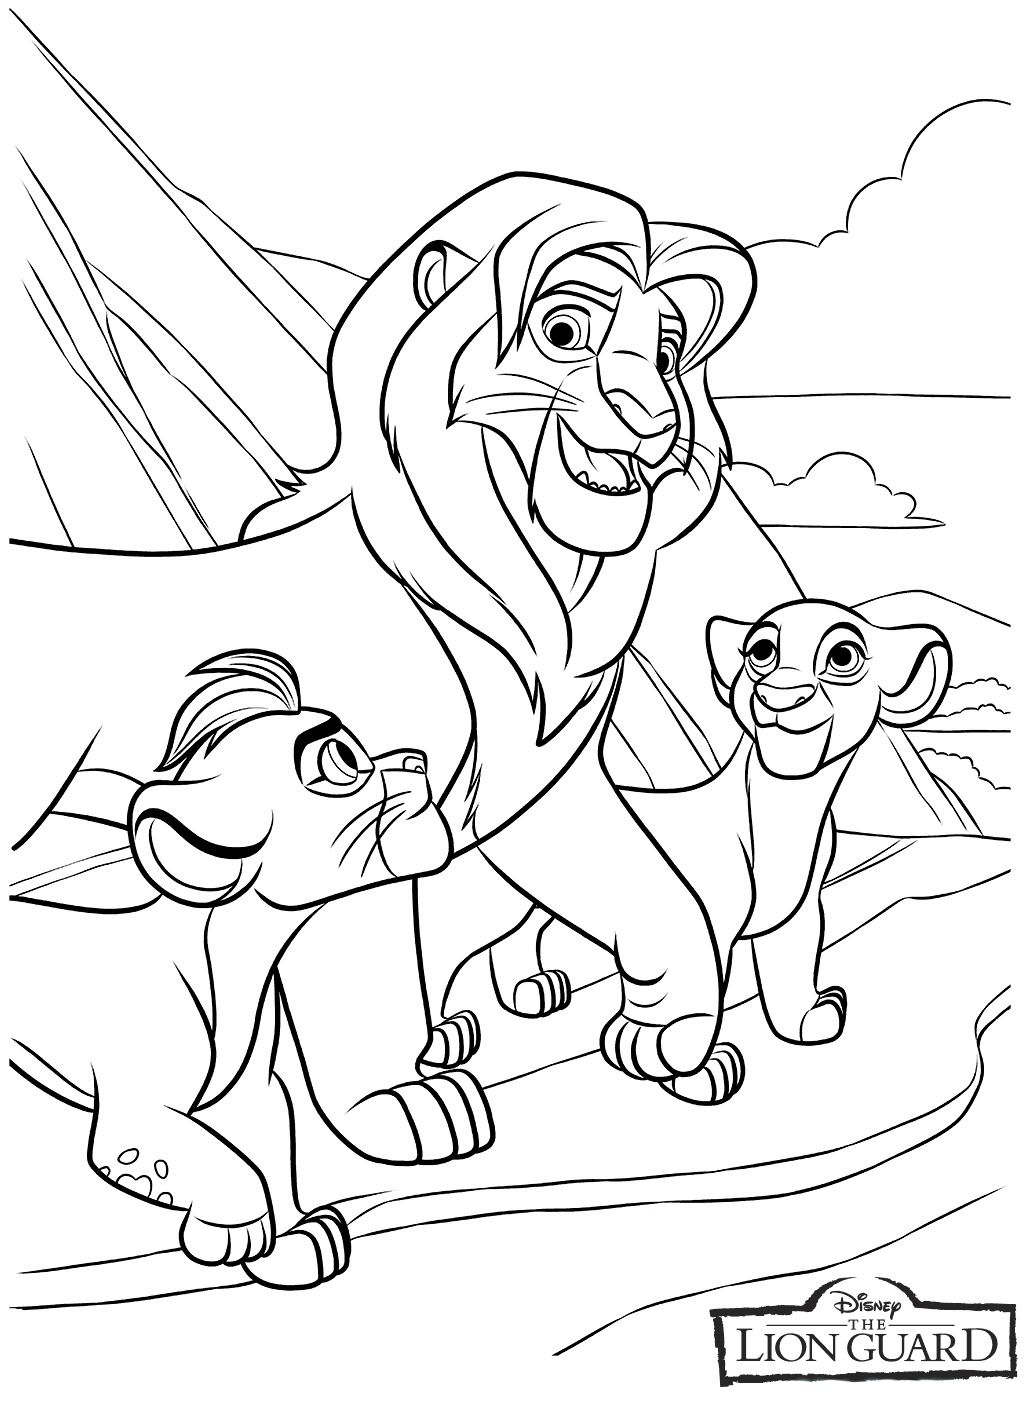 Disney Is At It Again With Lion King S Next Generation Lion Guard Simba And Nala Has A Family Of T Family Coloring Pages Disney Coloring Pages Coloring Books